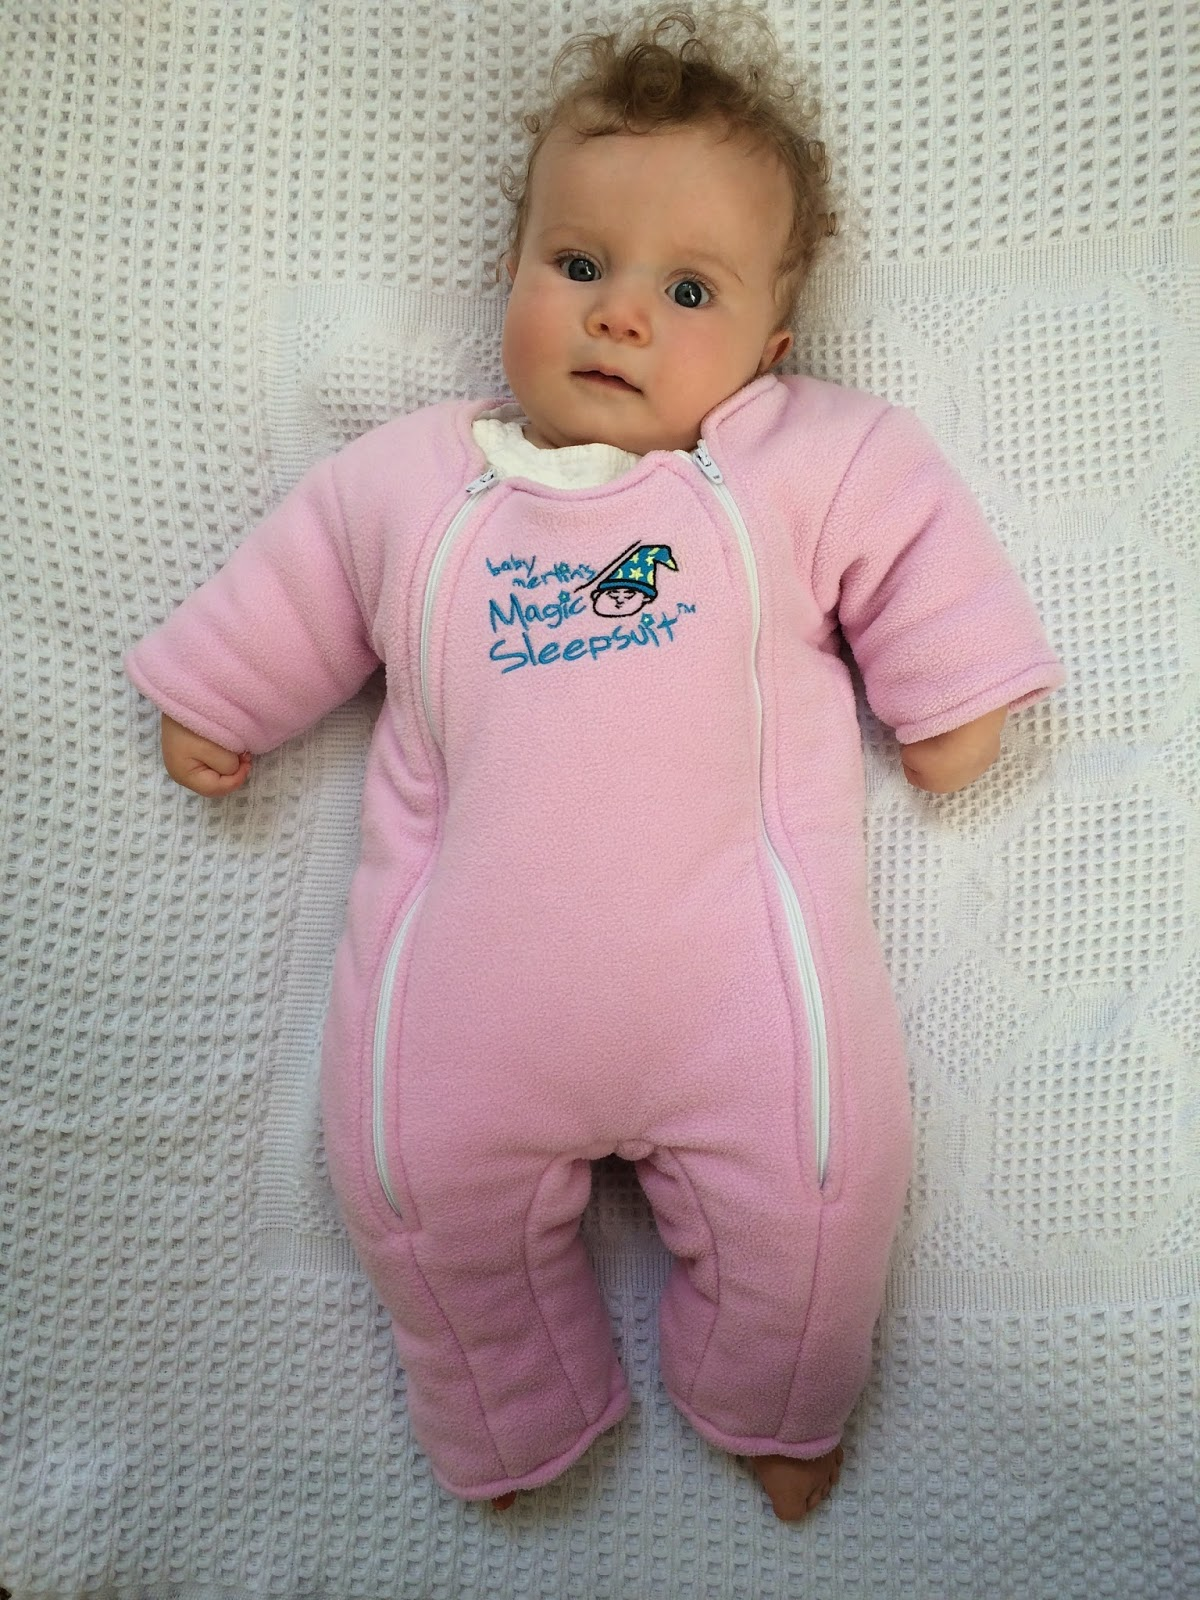 Find baby sleepwear & pyjamas at low prices from Target. Free Click + Collect on all orders over $ Free delivery on orders over $